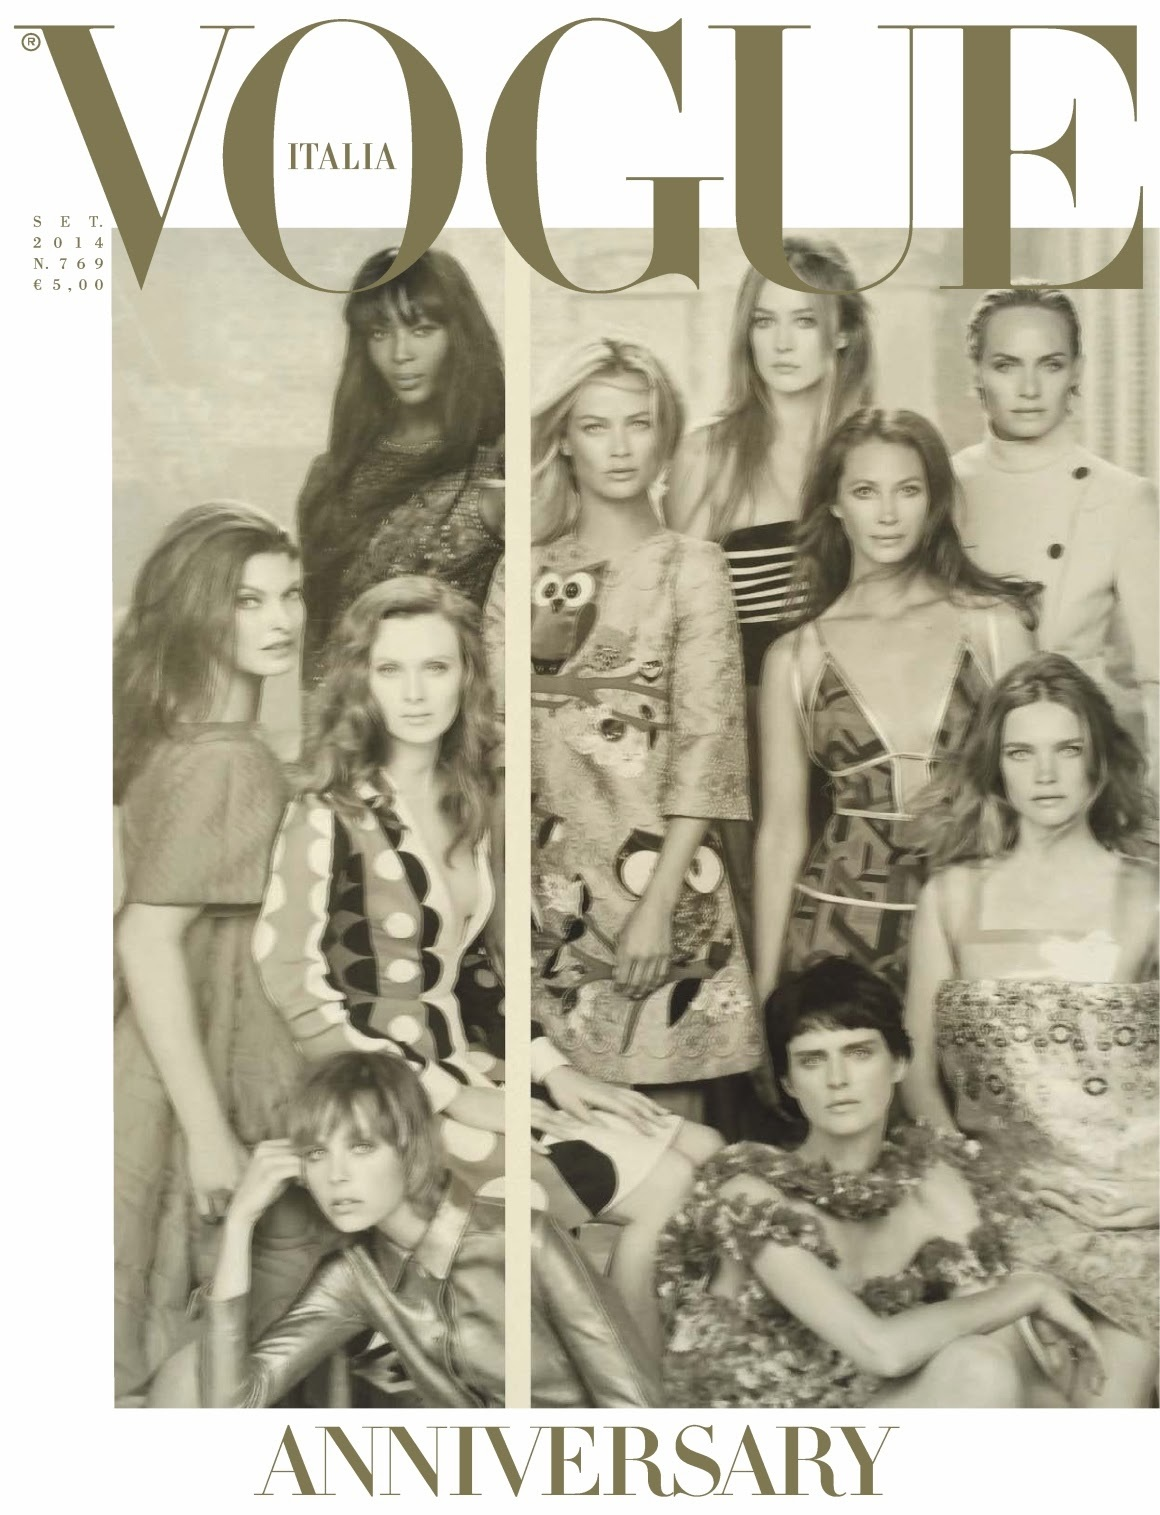 Vogue Italia 50th Anniversary cover